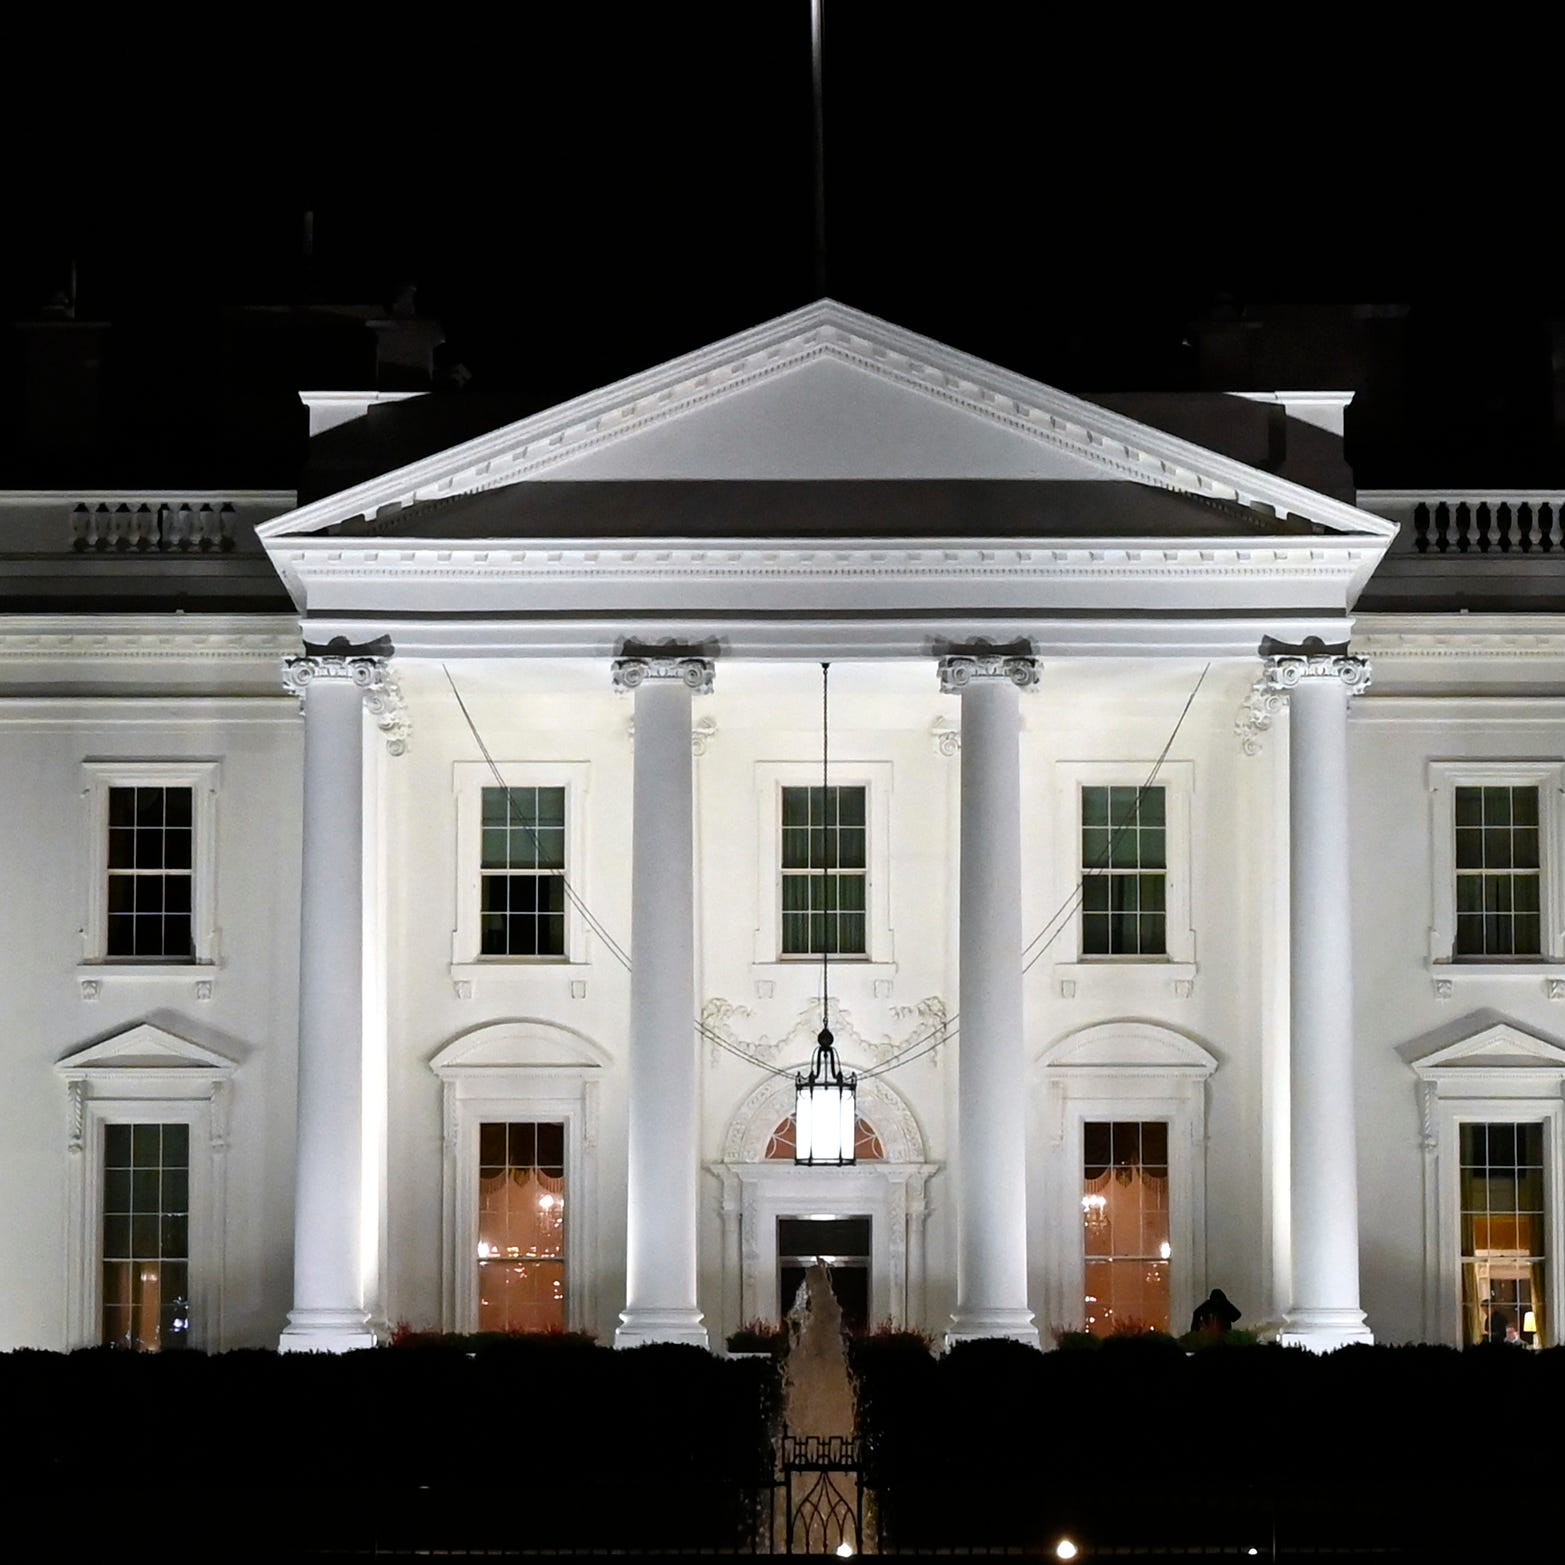 A view of the White House in Washington.